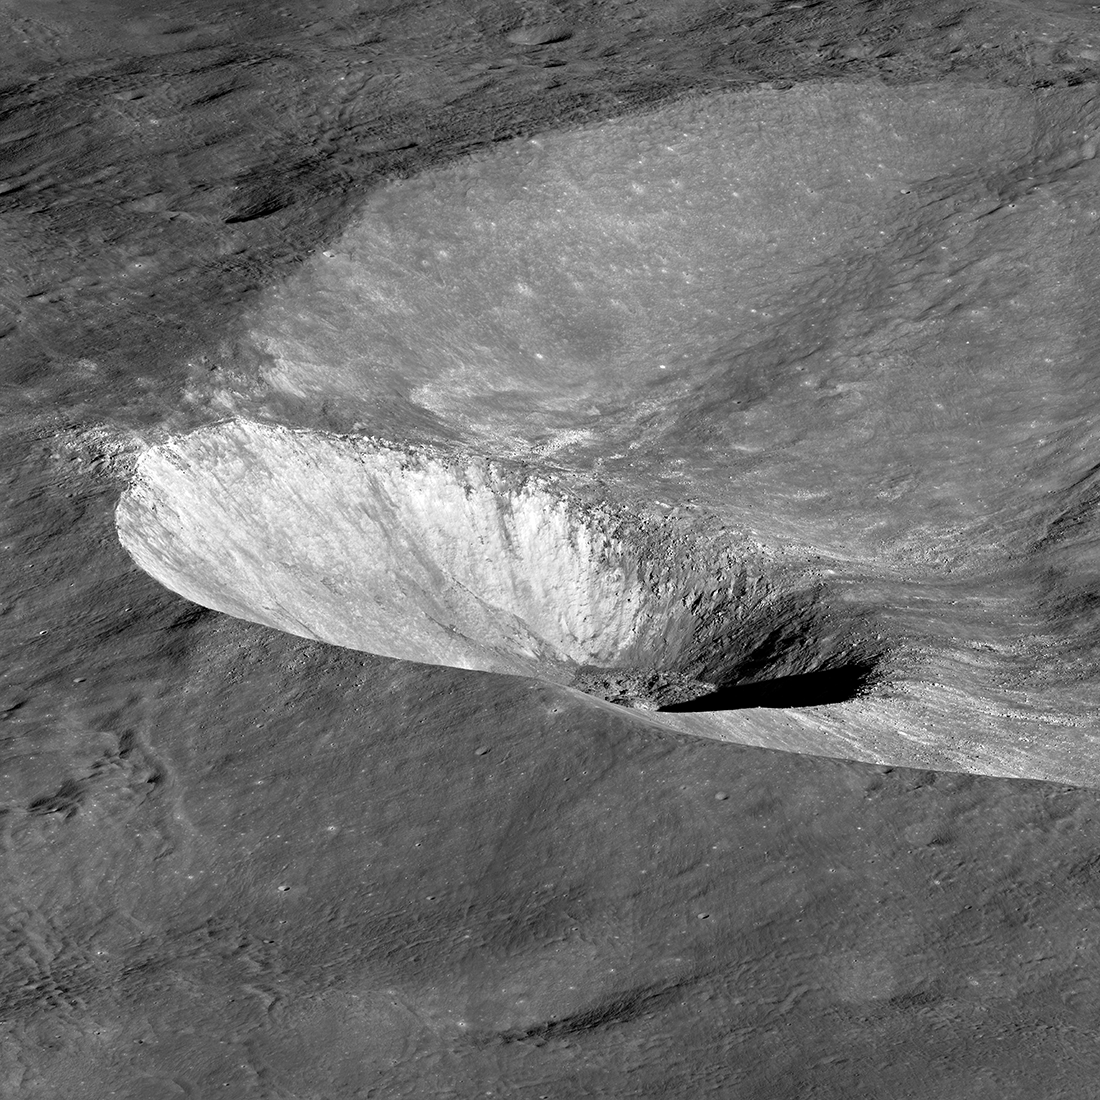 crater on a slope of a larger crater